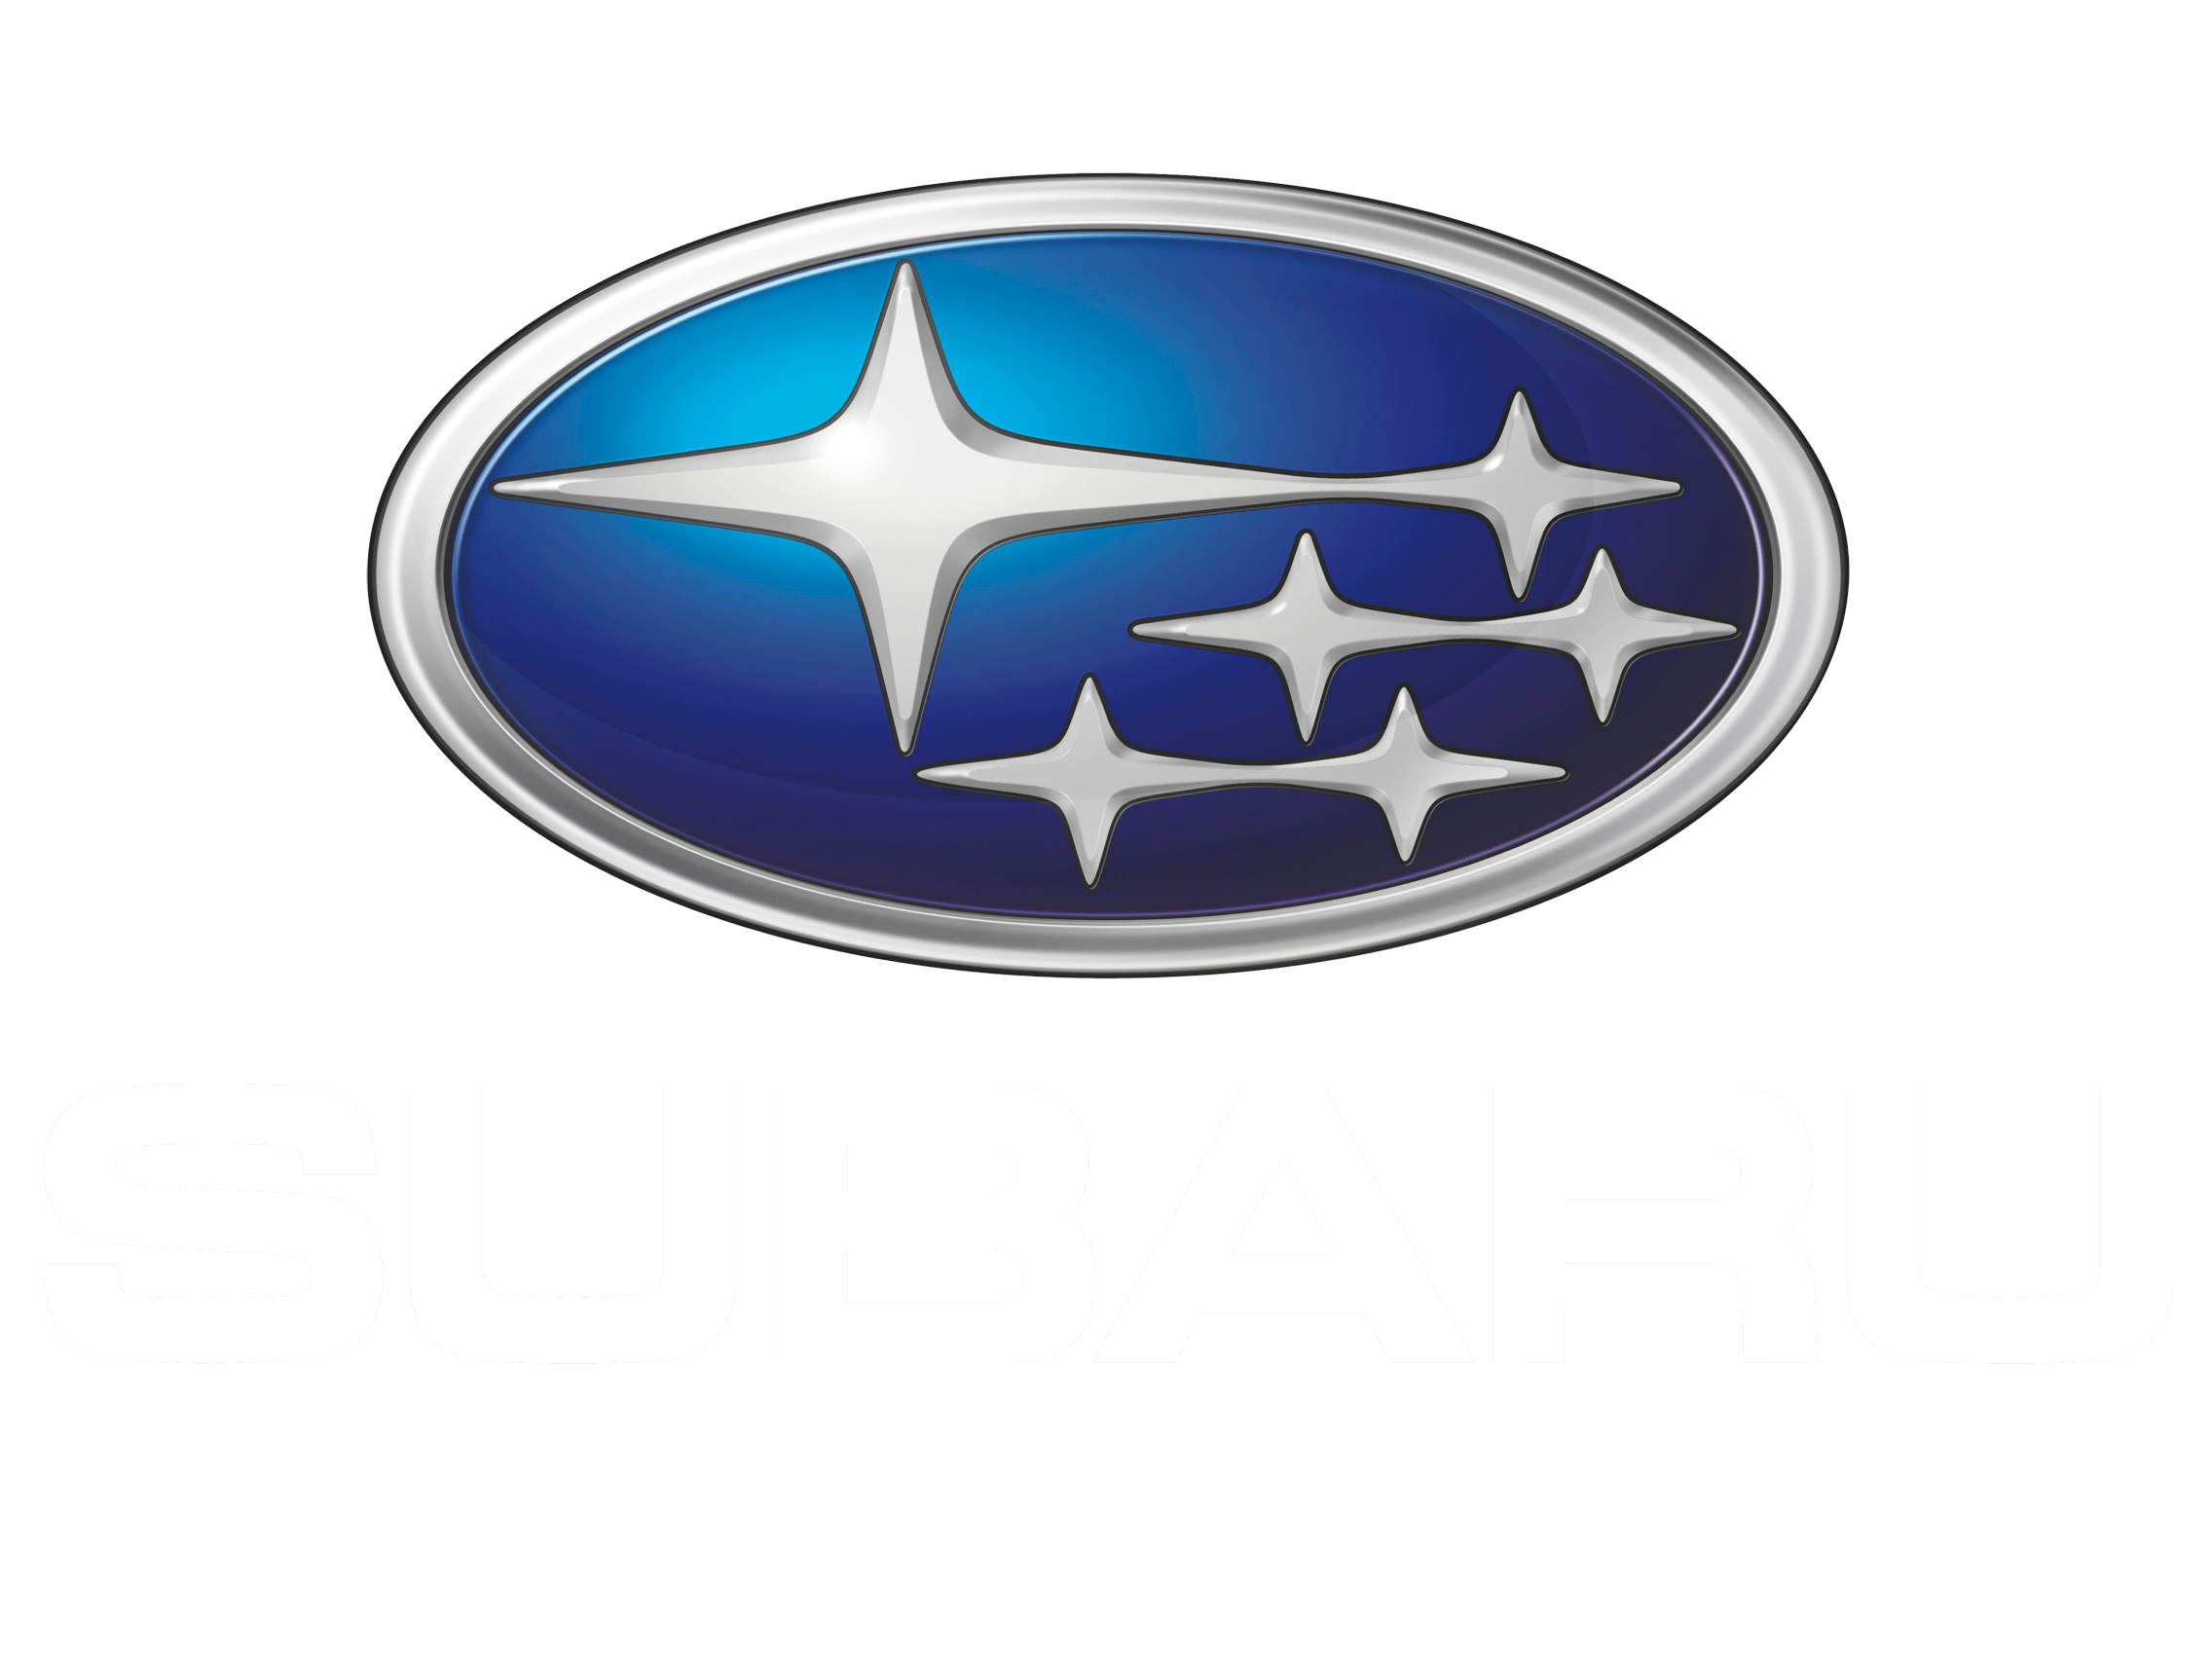 Subaru-logo-and-wordmark-copy.png